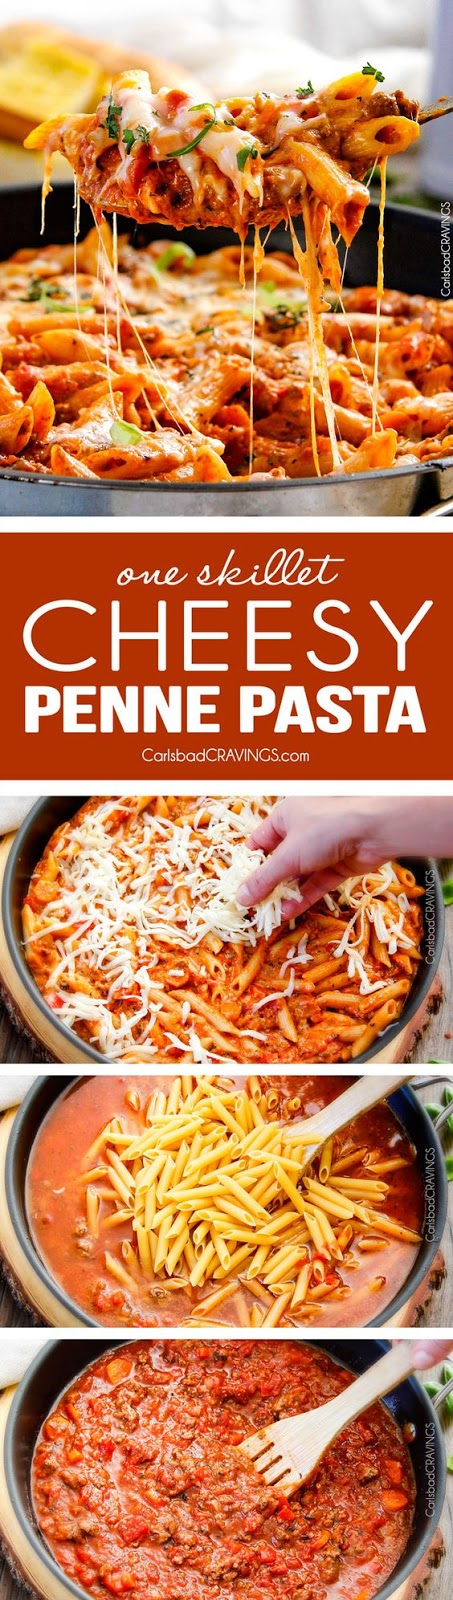 3409 rating    | ONE SKILLET CHEESY PENNE & NEW YORK BAKERY  BAKE AND BREAD #ONE #SKILLET #CHEESY #PENNE #NEW #YORK #BAKERY  #BAKE AND BREAD